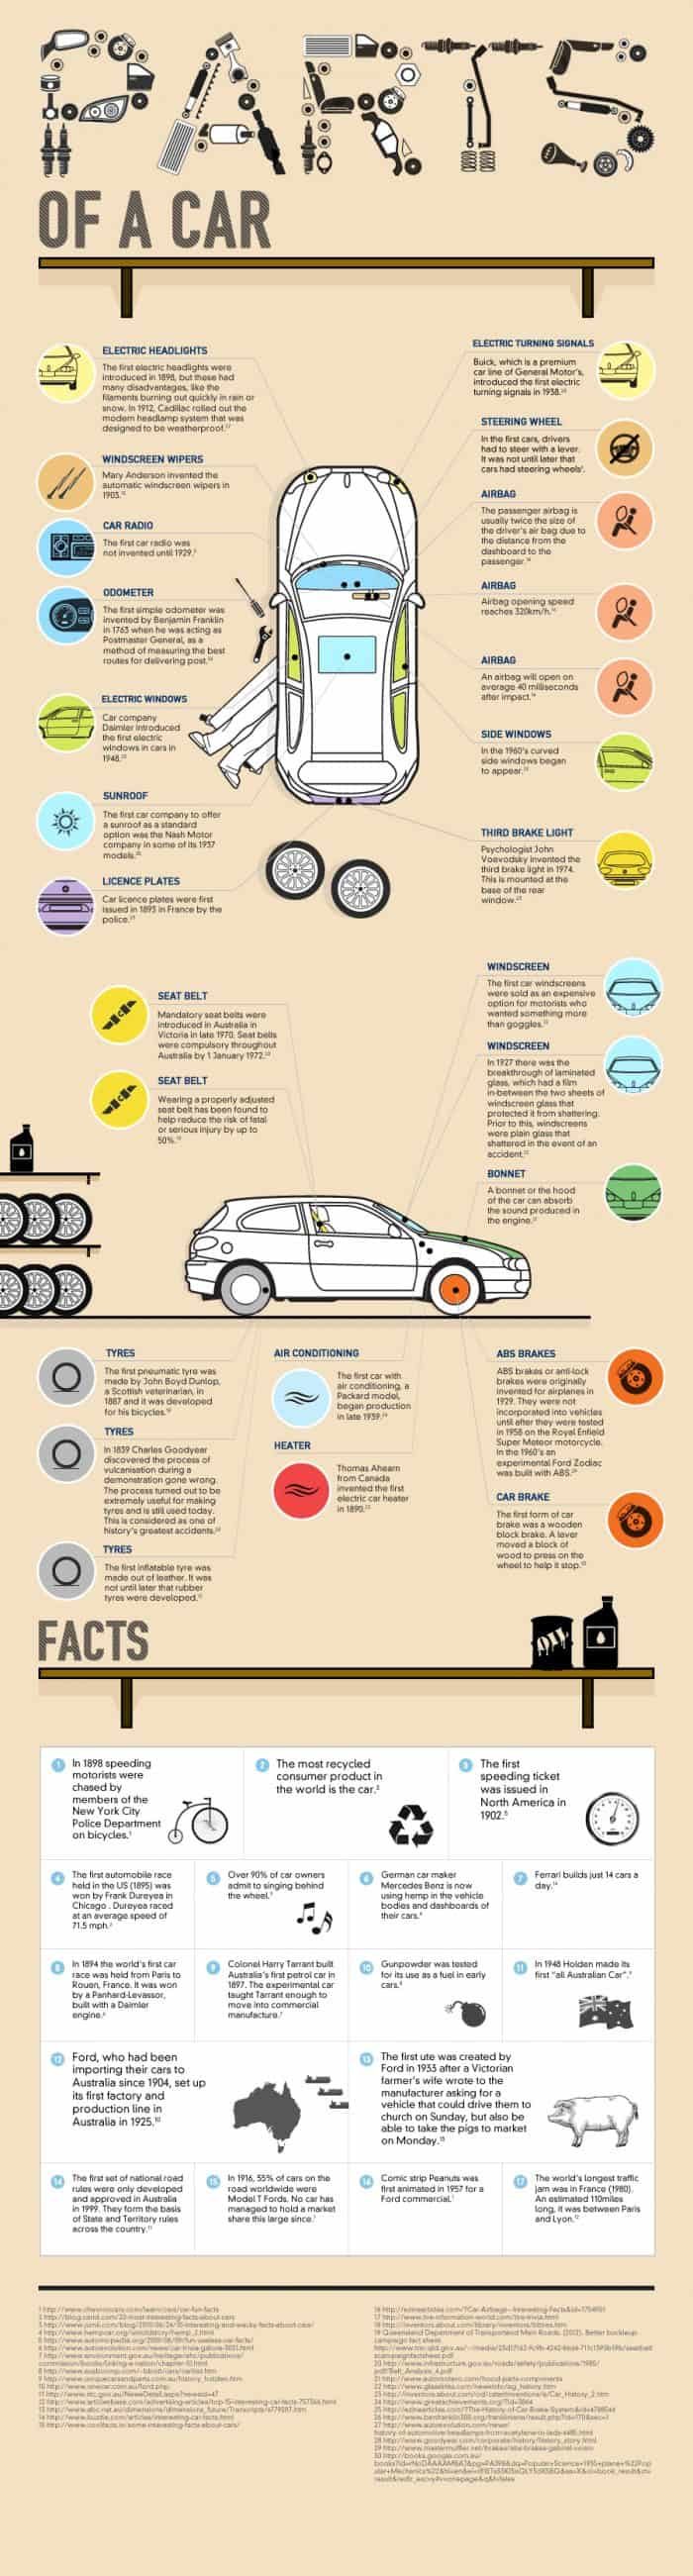 Parts of a Car Infographic